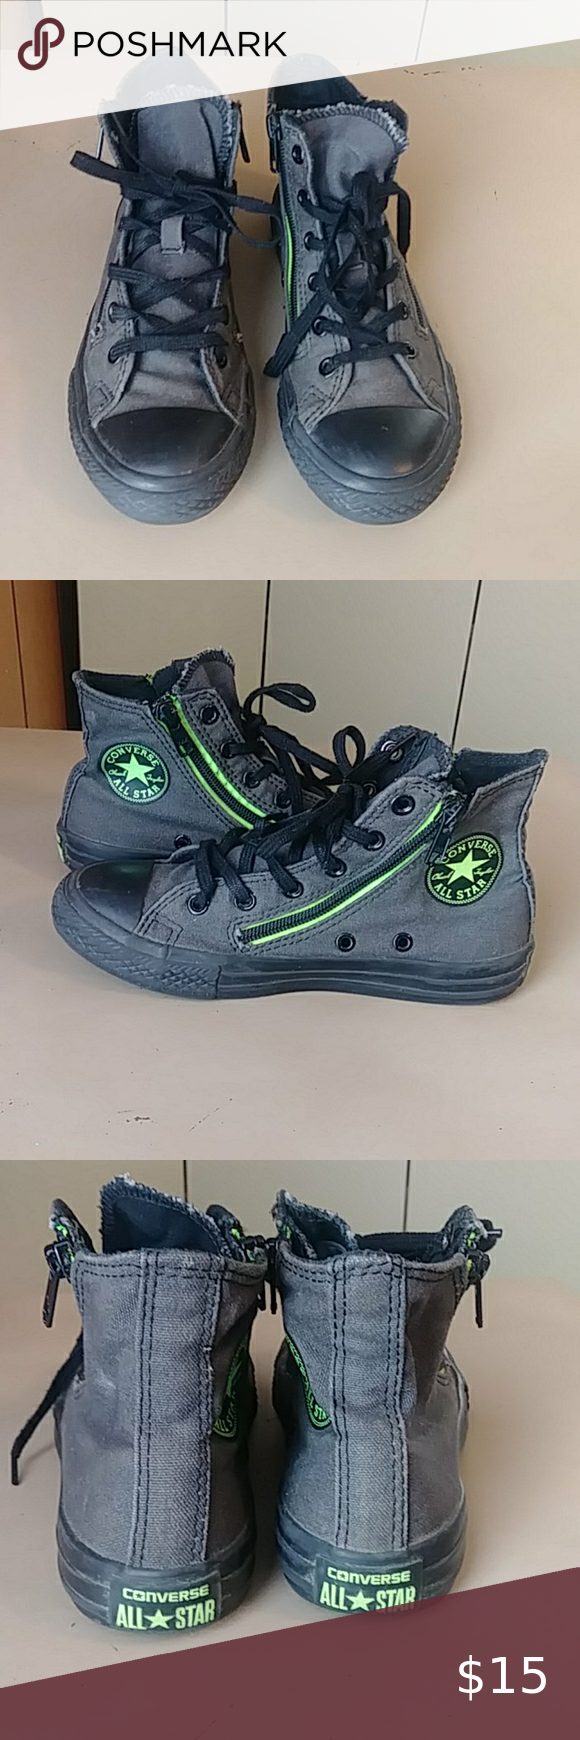 Converse High Top Double Zipper Sneakers Gray, black and lime green Chuck Taylor…